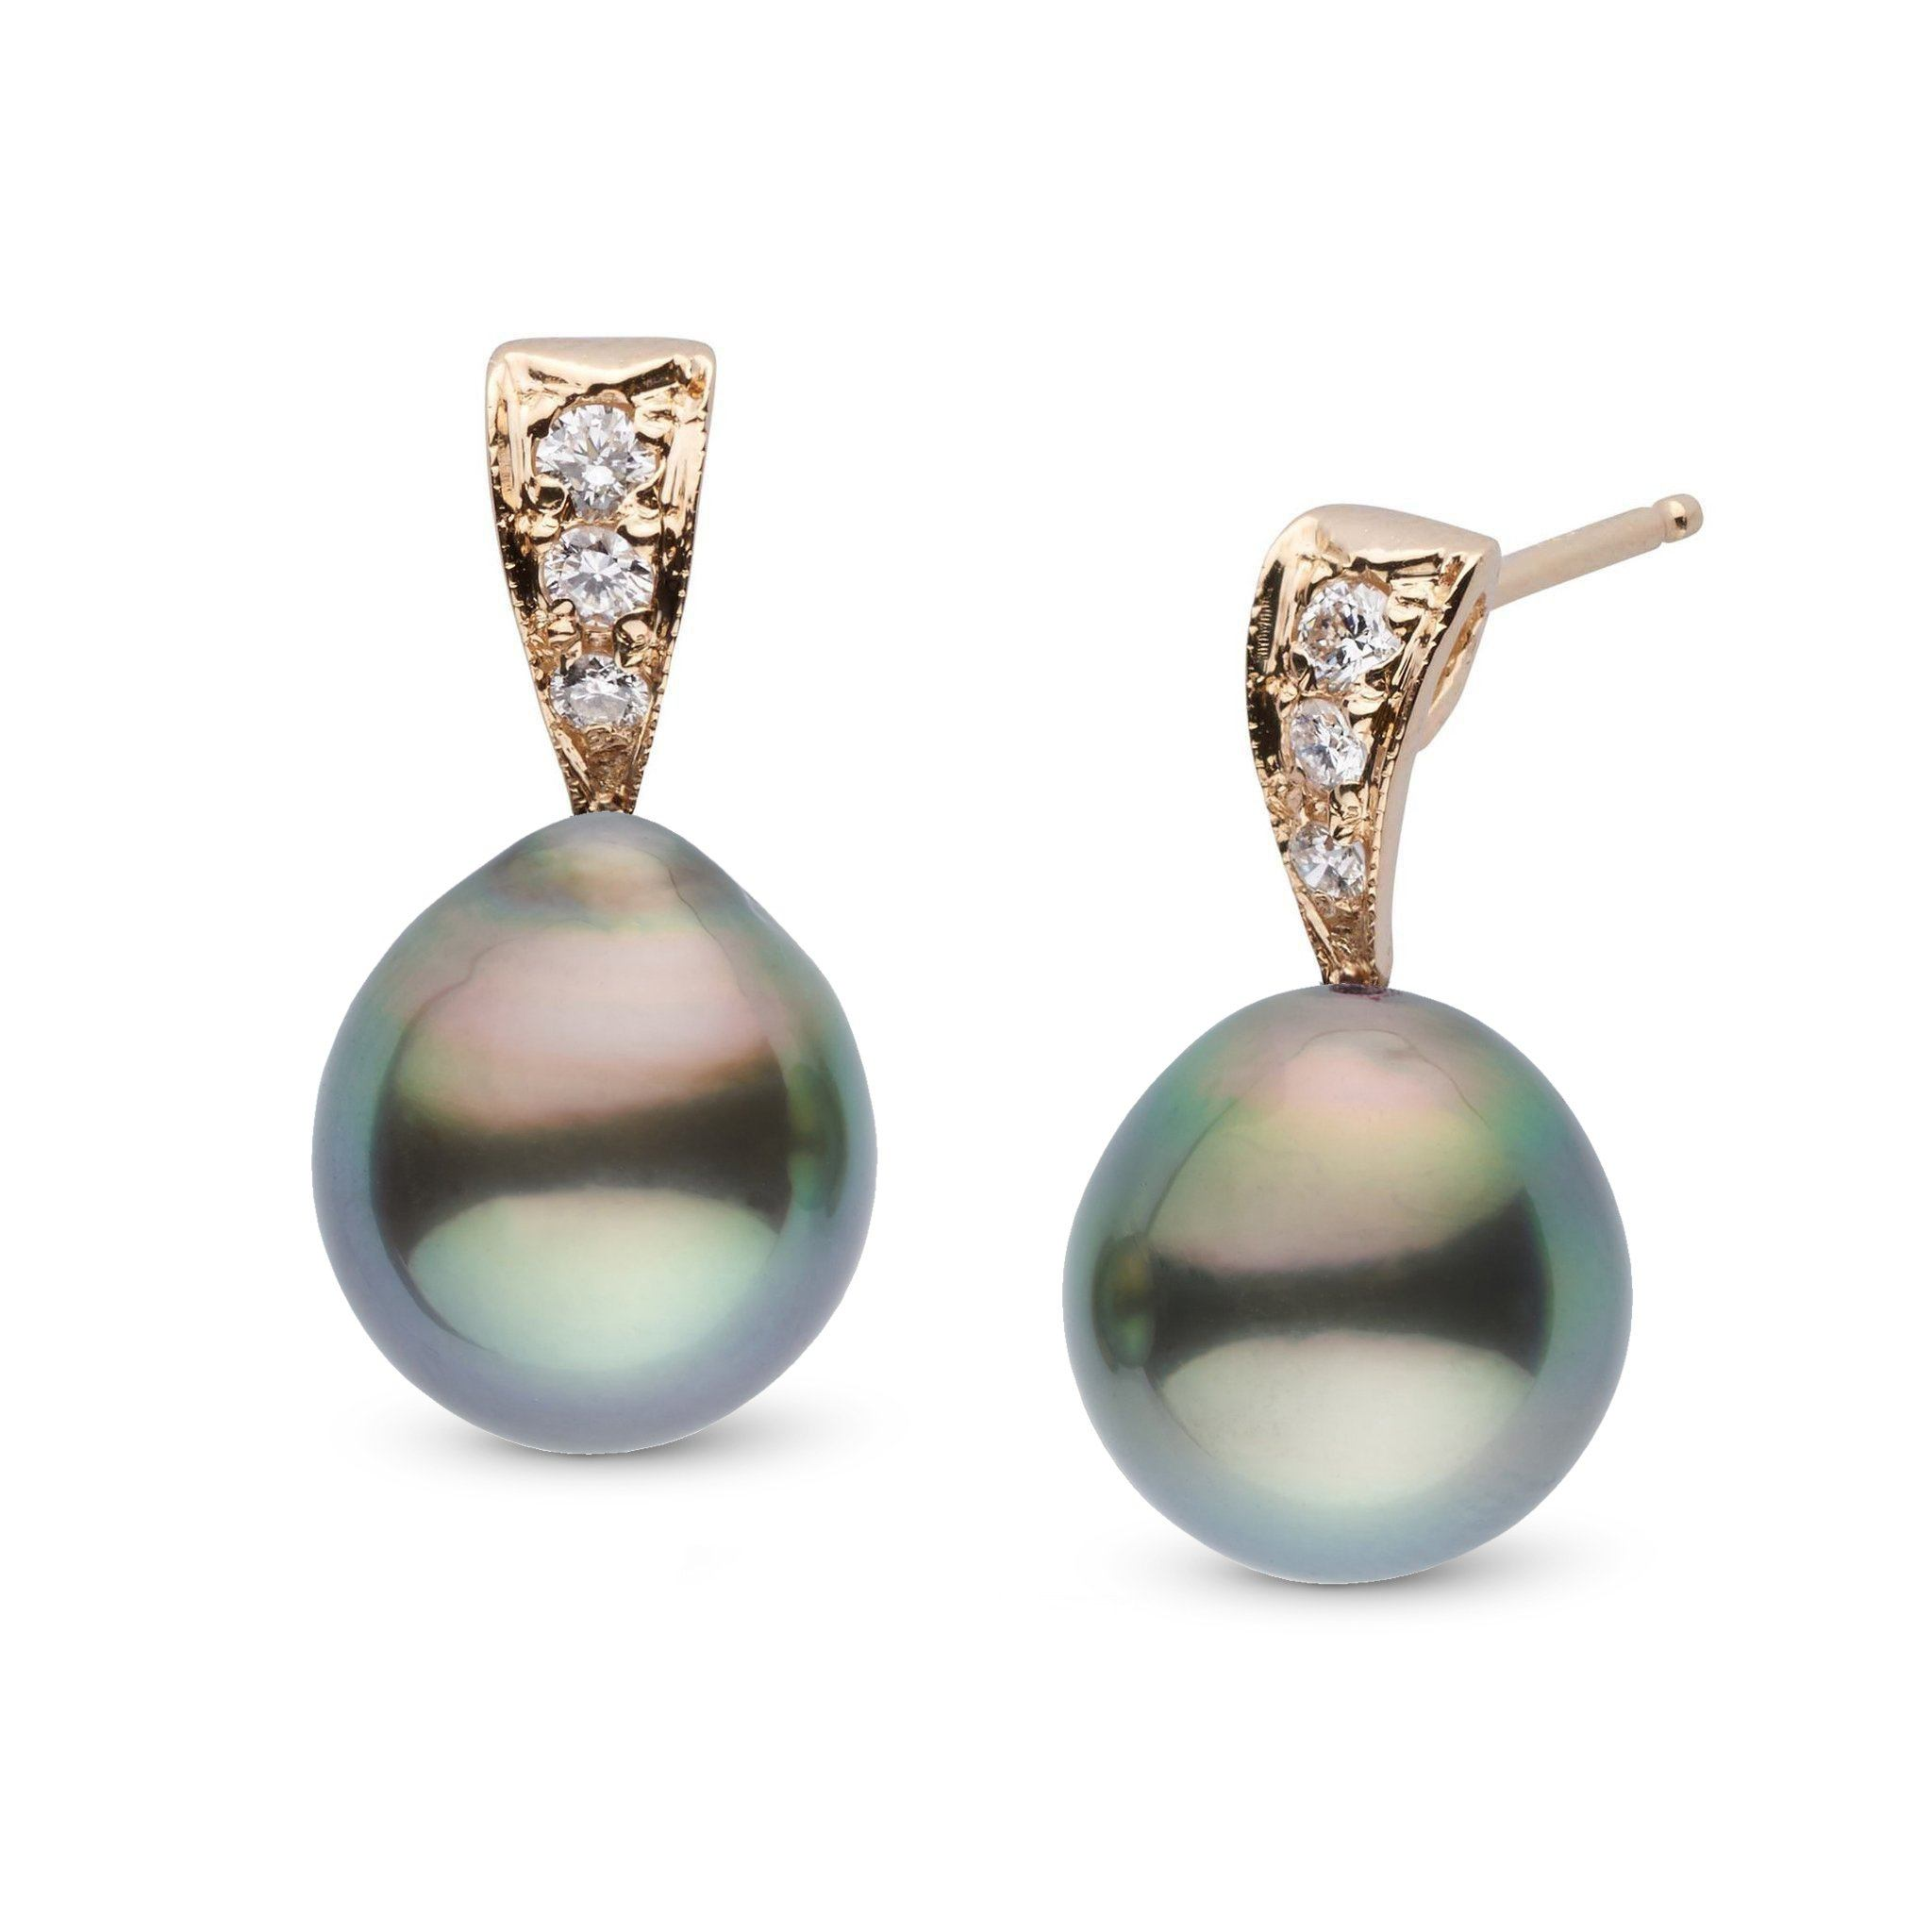 Desire Collection 9.0-10.0 mm Drop Tahitian Pearl & Diamond Earrings